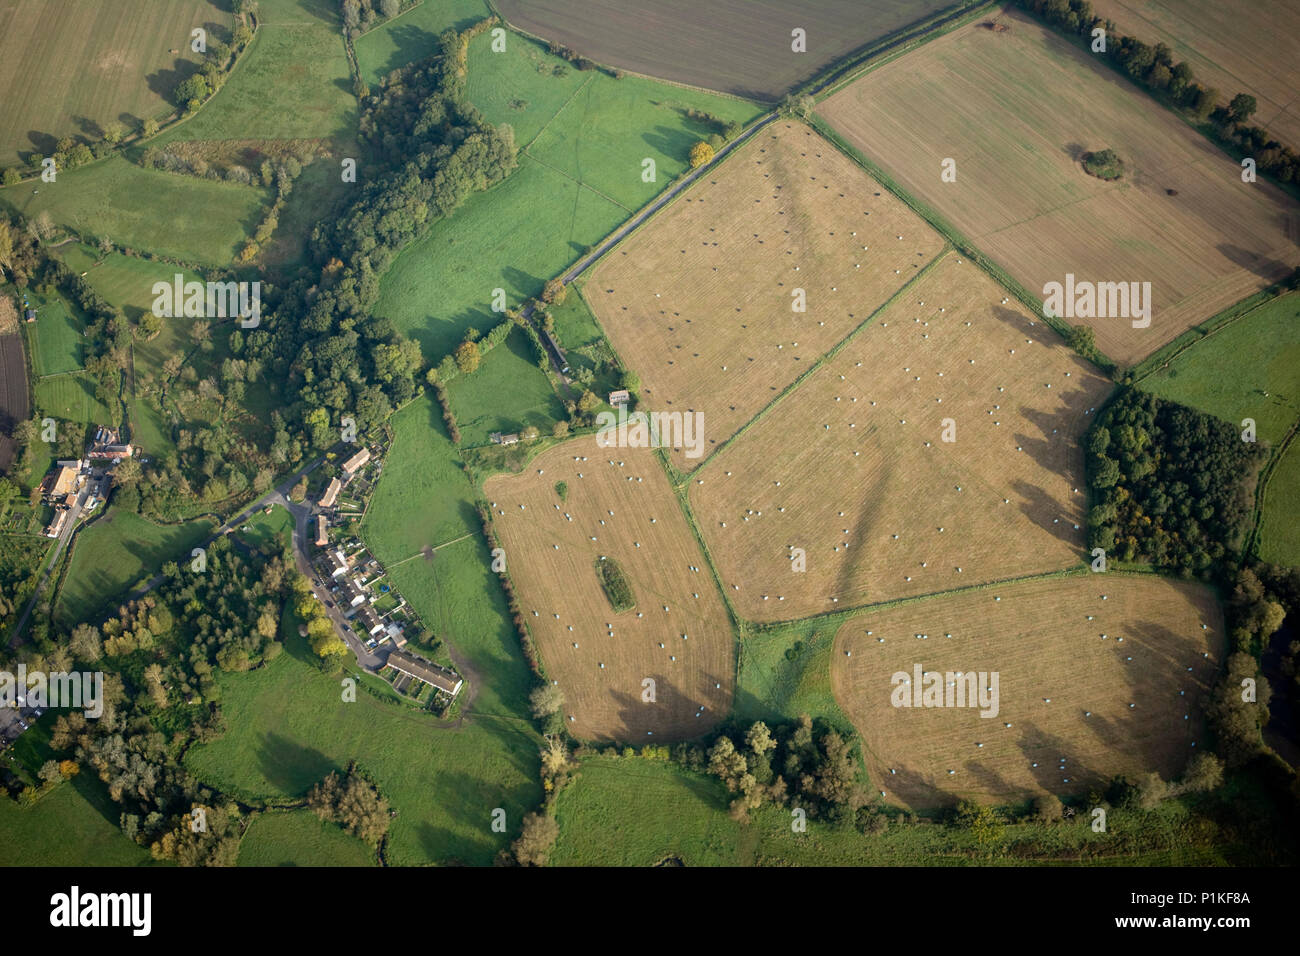 Marden Henge, Marden, Wiltshire, c1980-c2010. Aerial view of the neolithic site prior to 2010 excavations. The site is also known as Hatfield Earthwor - Stock Image